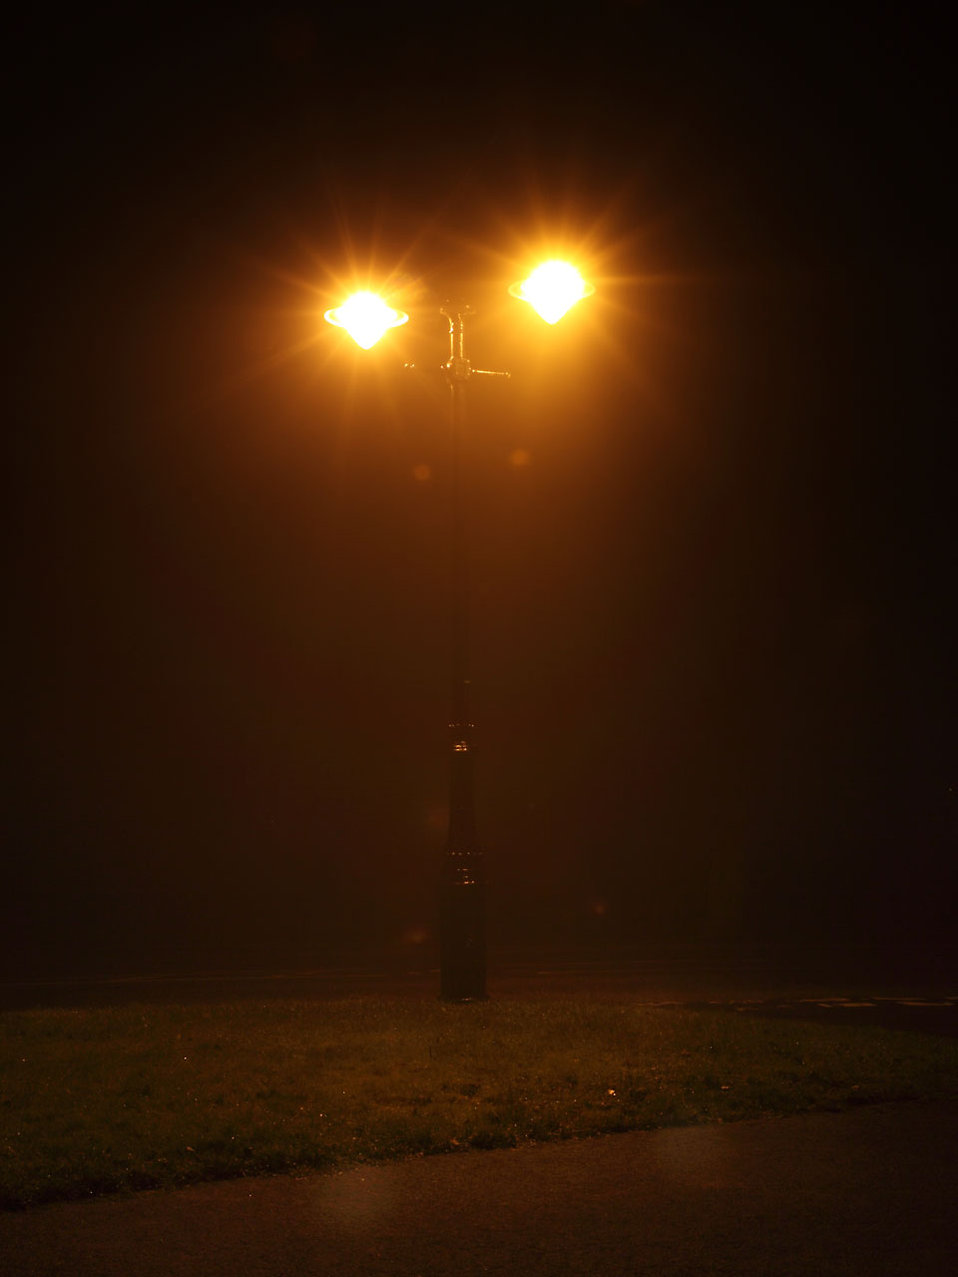 Street Lamp Free Stock Photo A Street Lamp Shining On